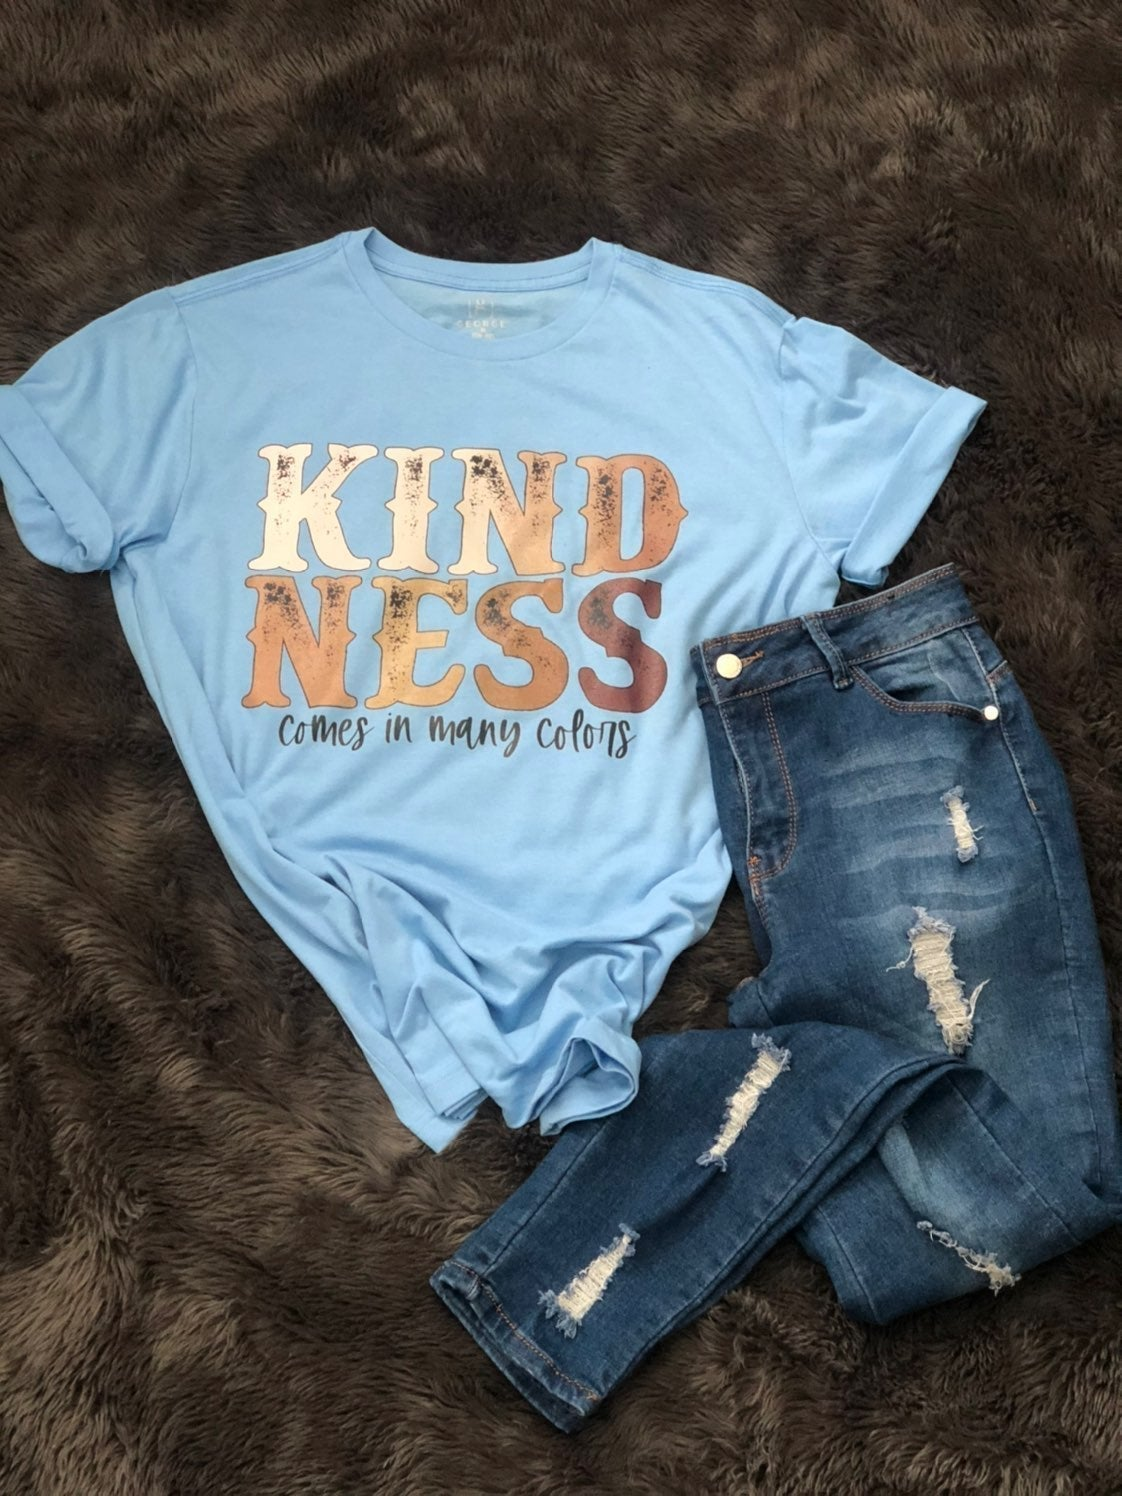 Kindness Comes In Many Colors tee